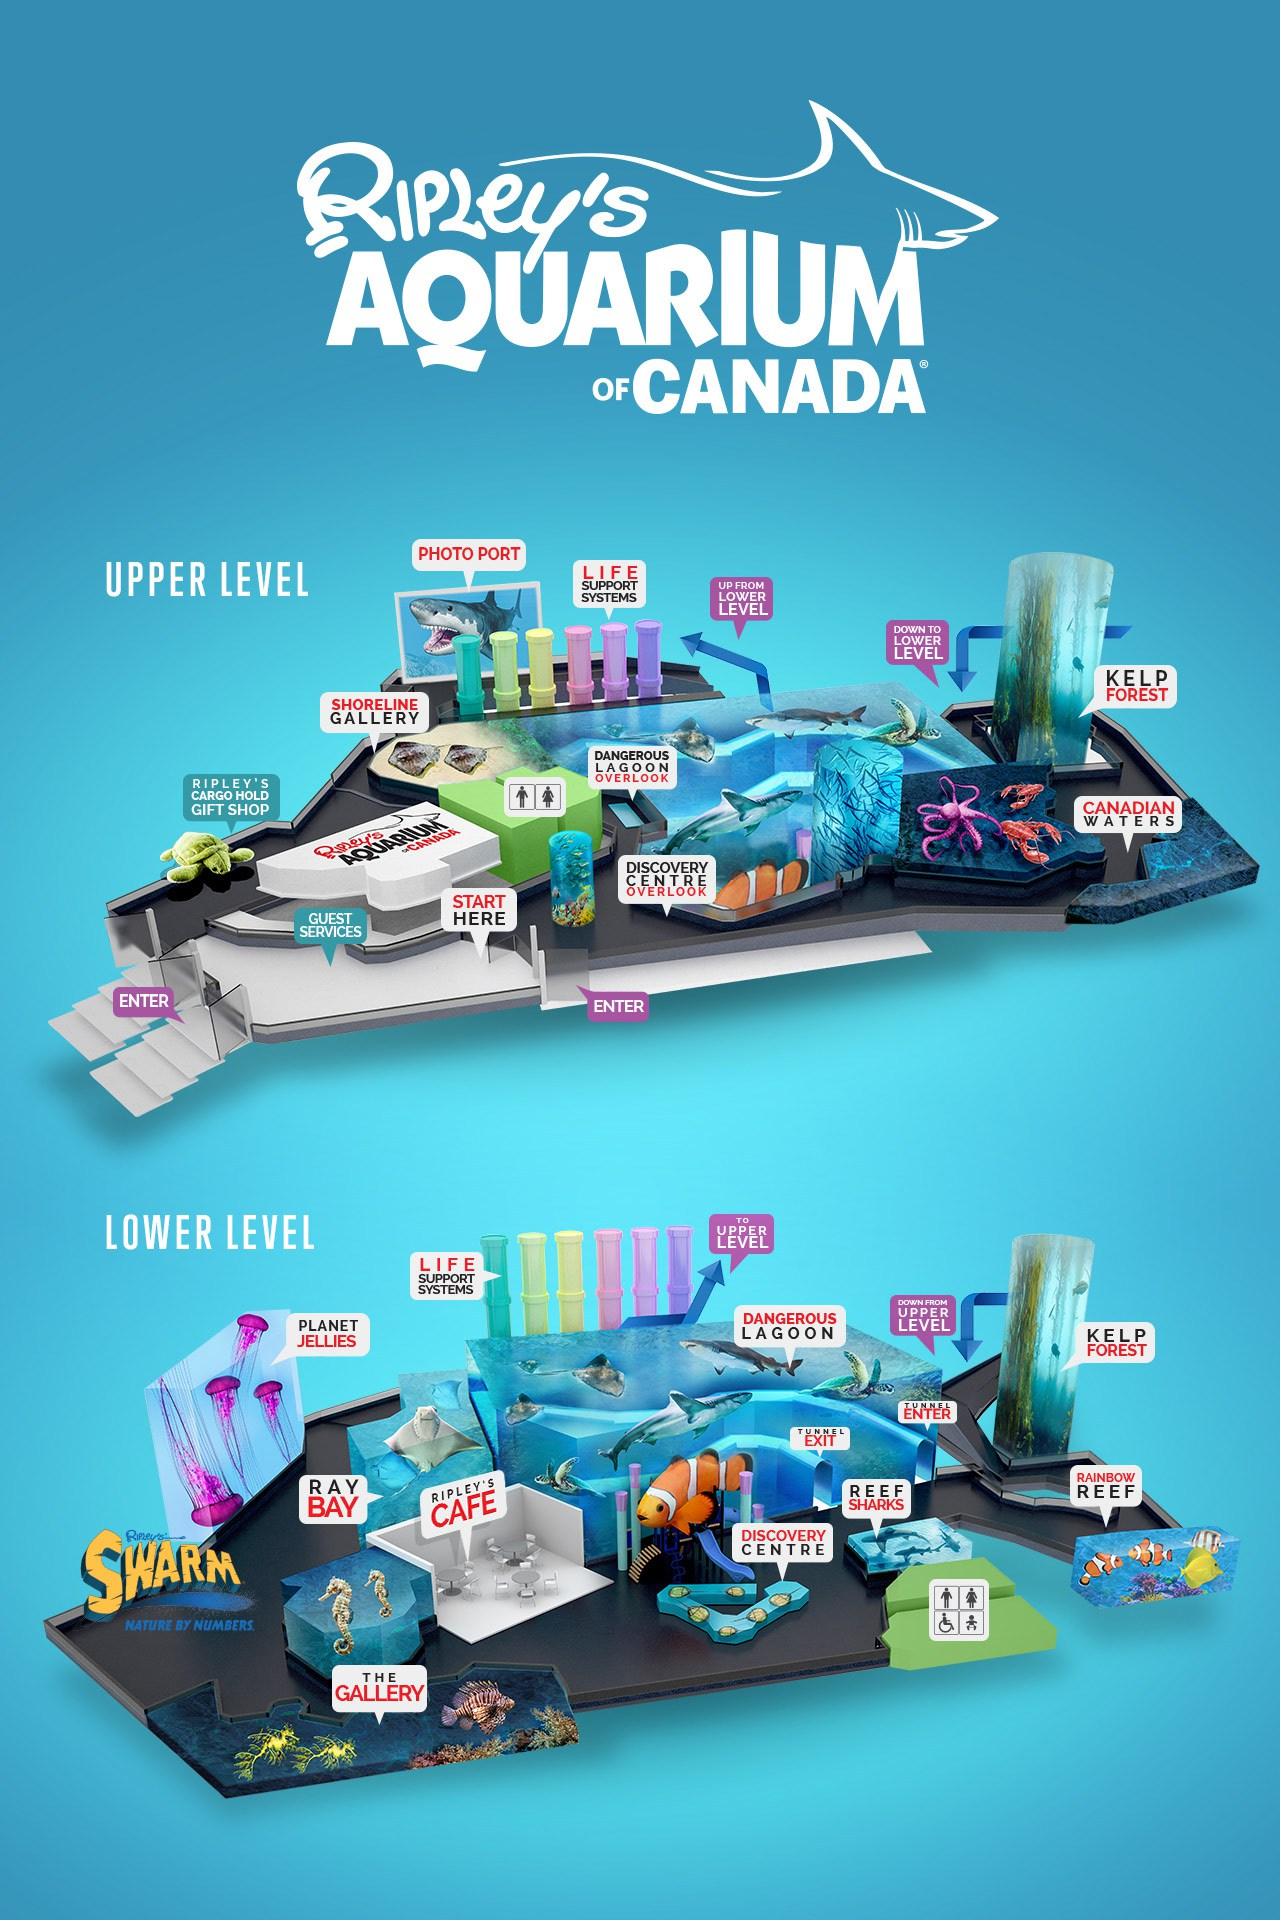 Fish aquarium in downtown toronto - Weekly Operating Hours